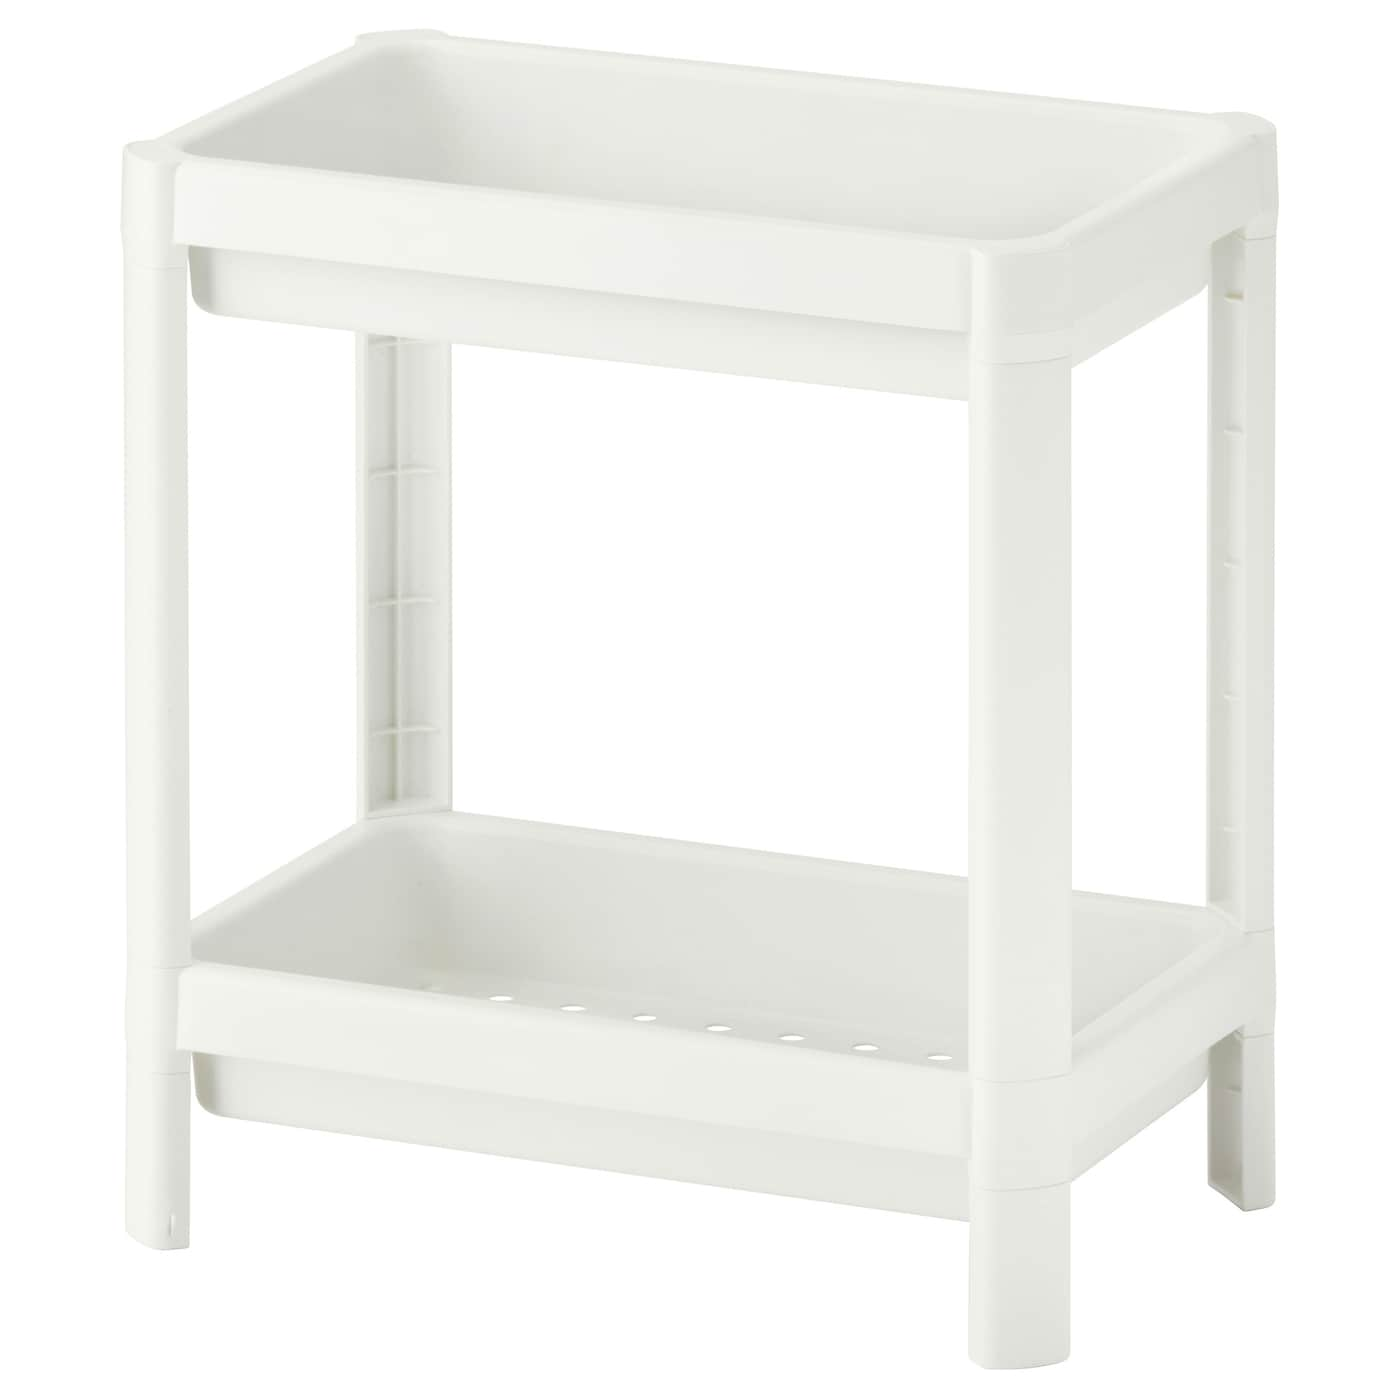 Ikea Vesken Shelf Unit Perfect In A Small Bathroom